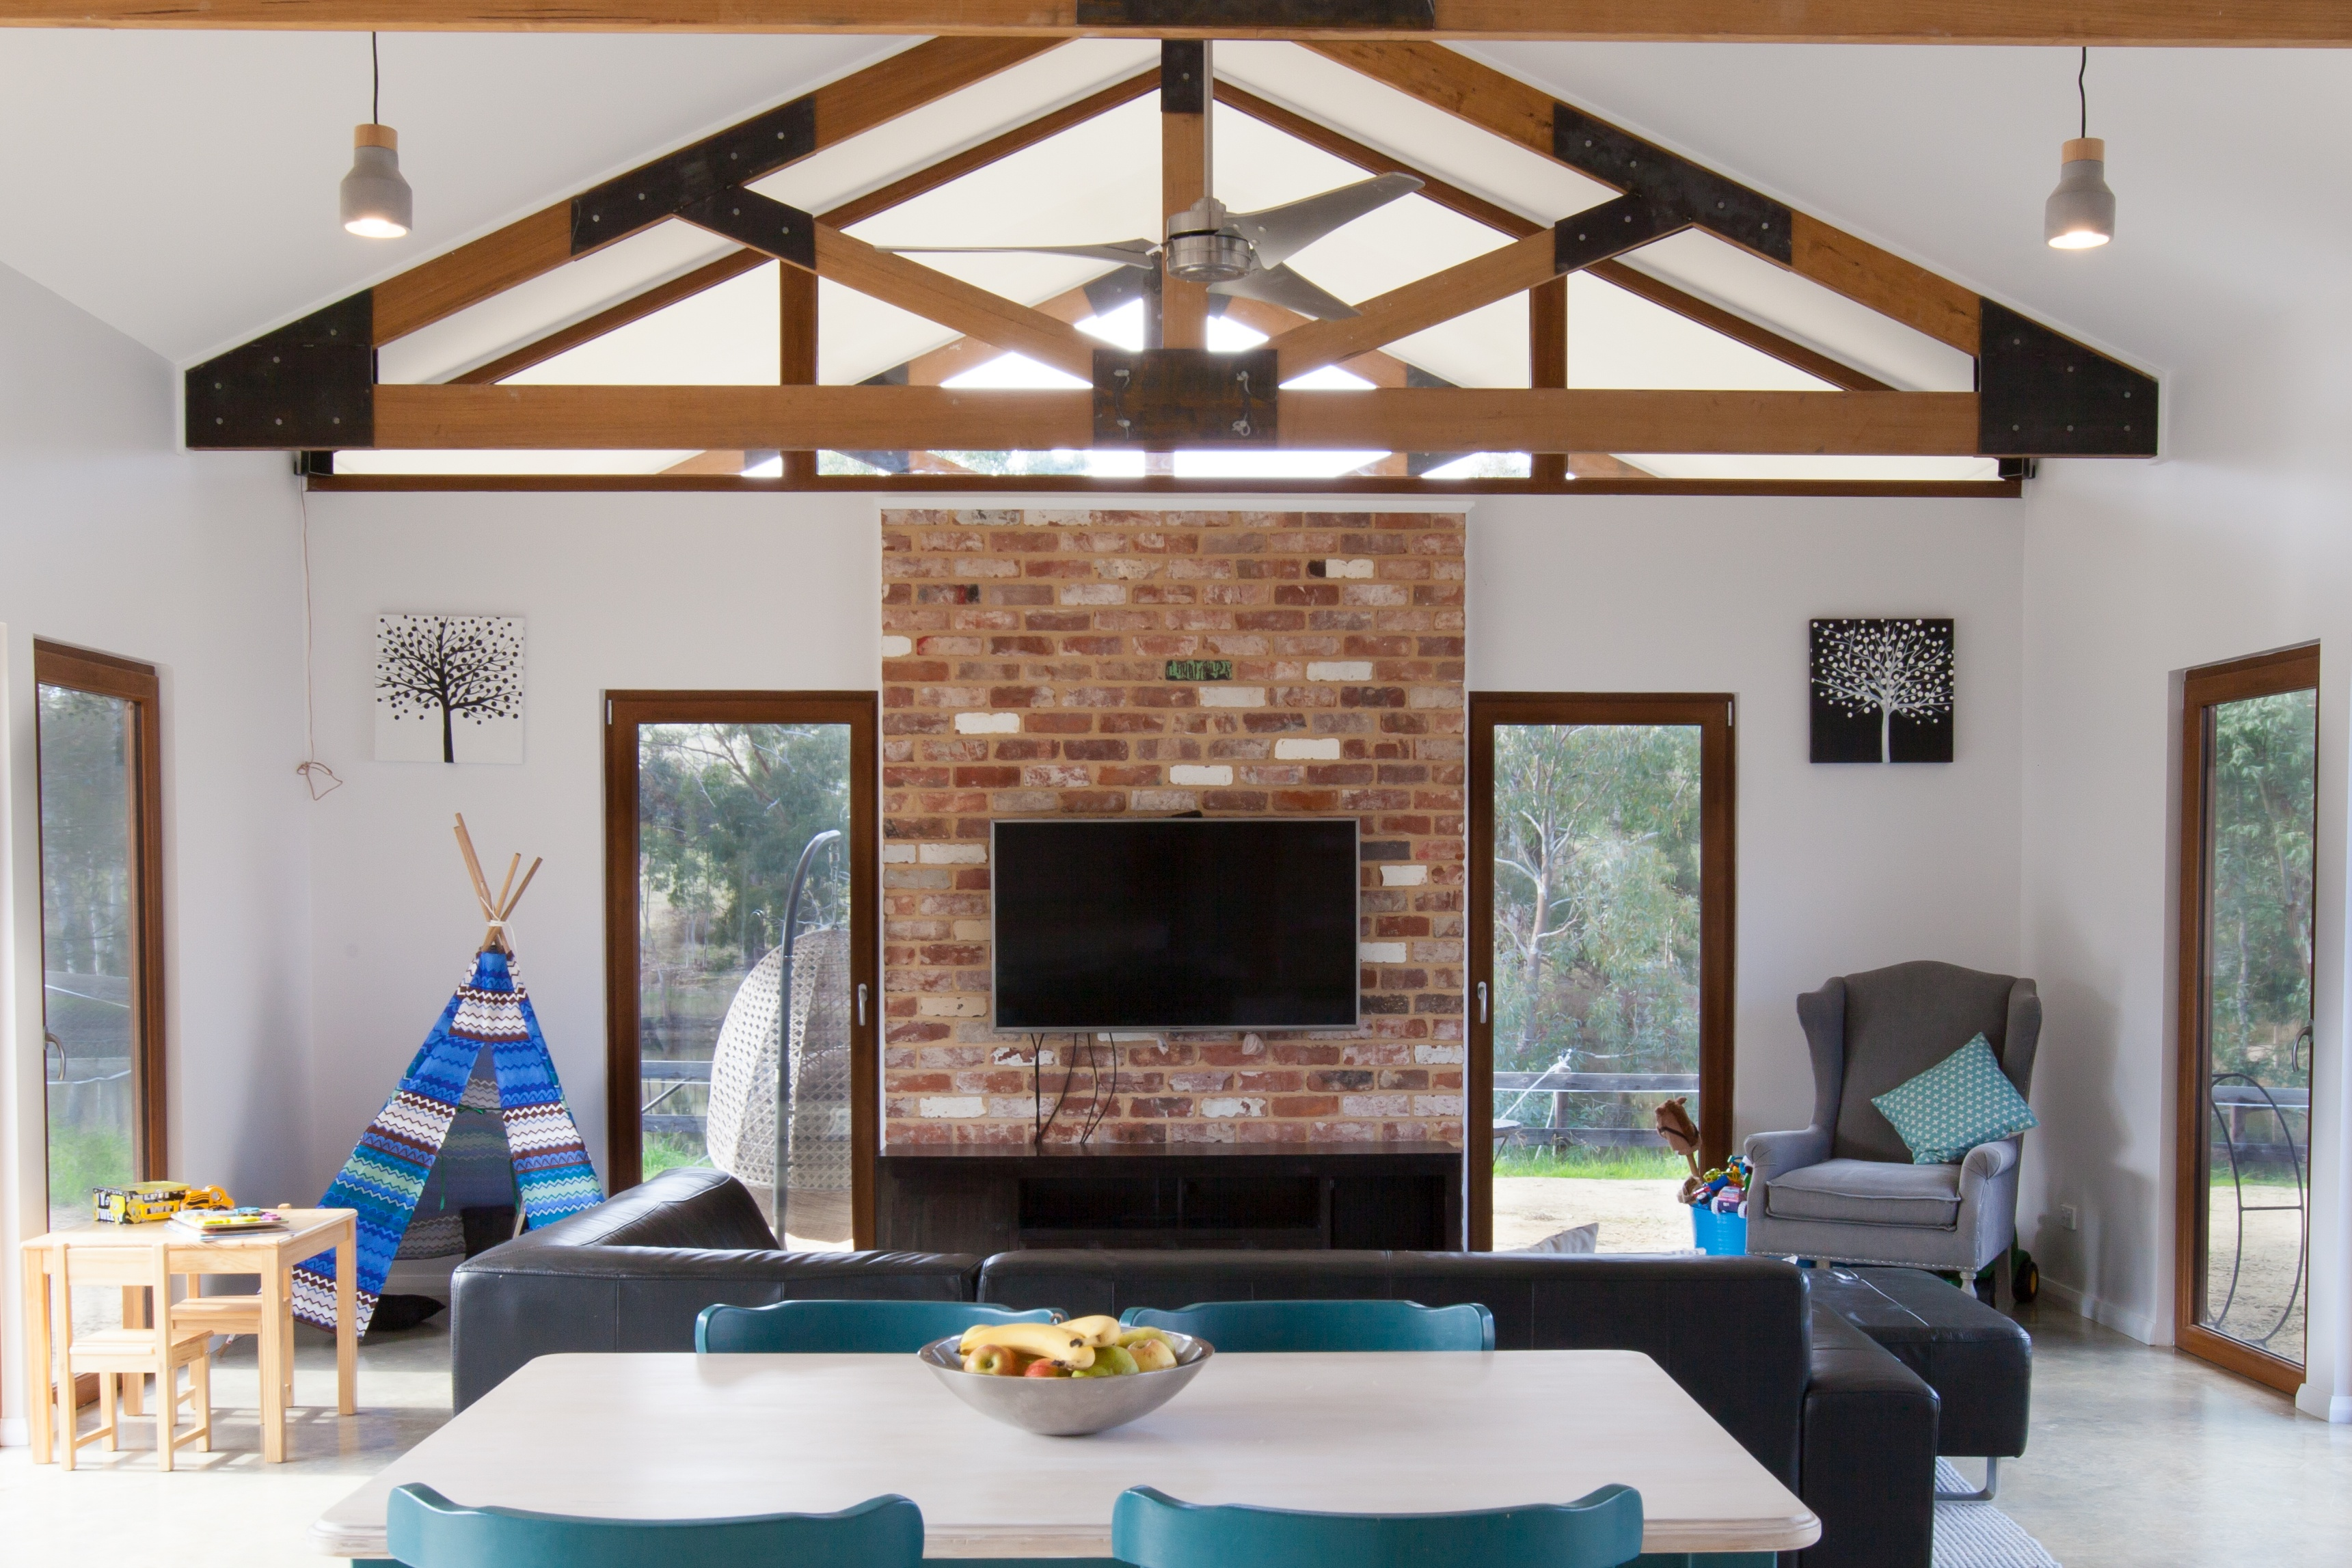 Contact the renovation experts at Shire Homes for your next renovation or house extension project